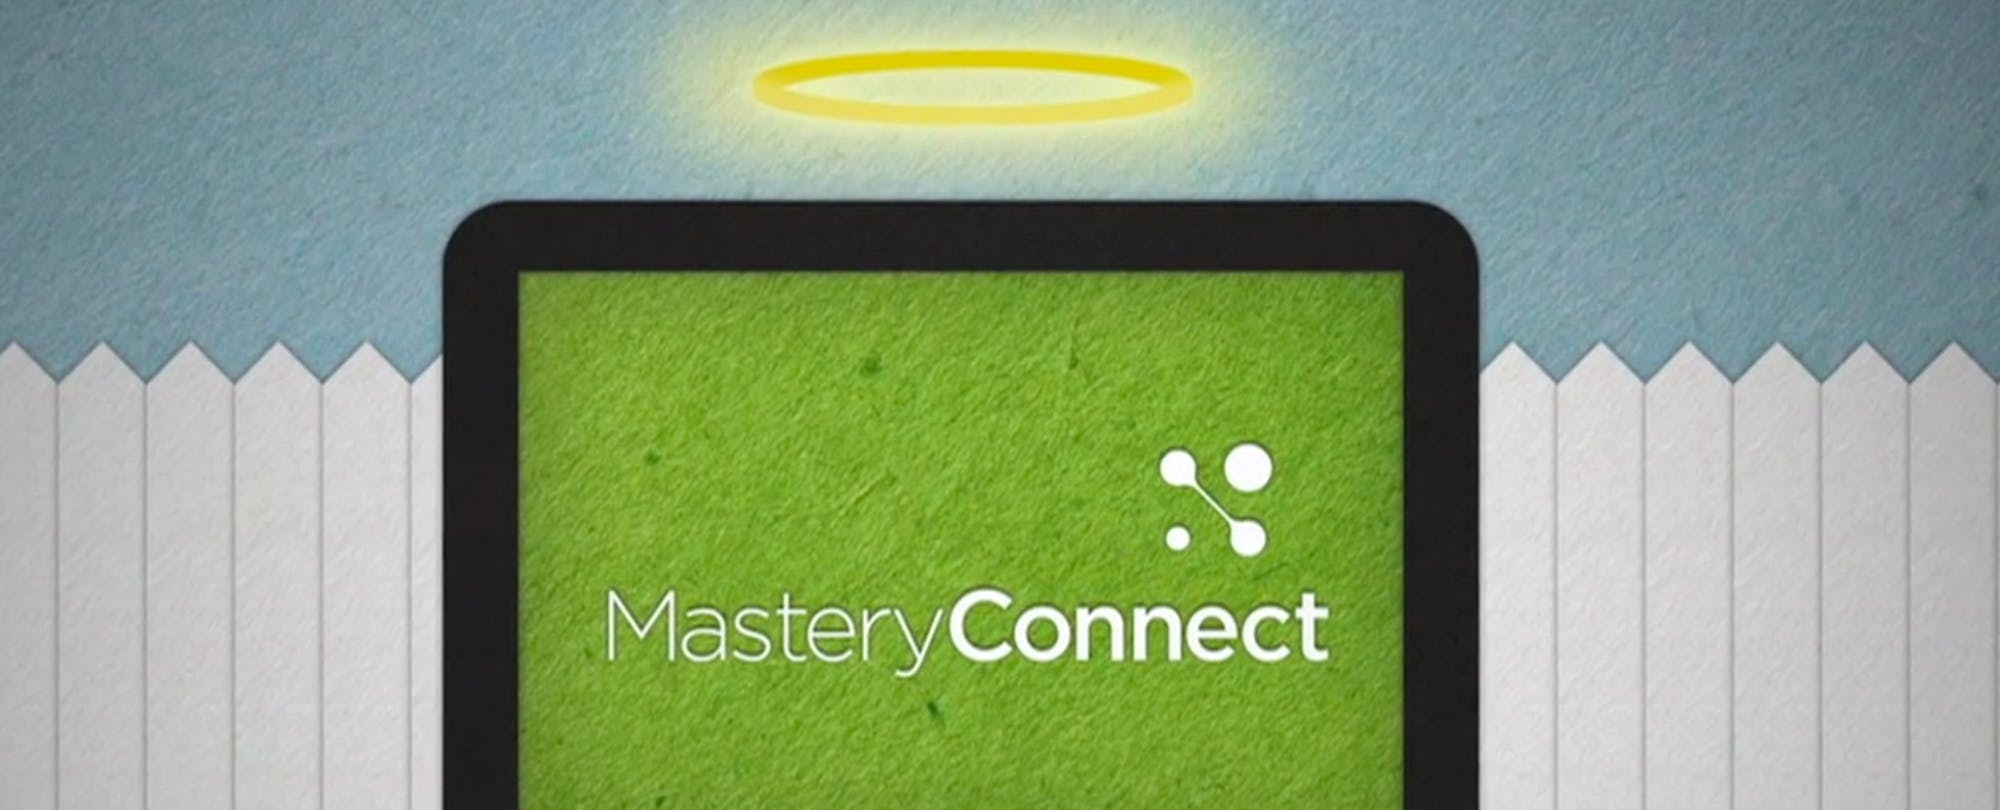 MasteryConnect Raises $15.2 Million for Mastery-Based Assessment